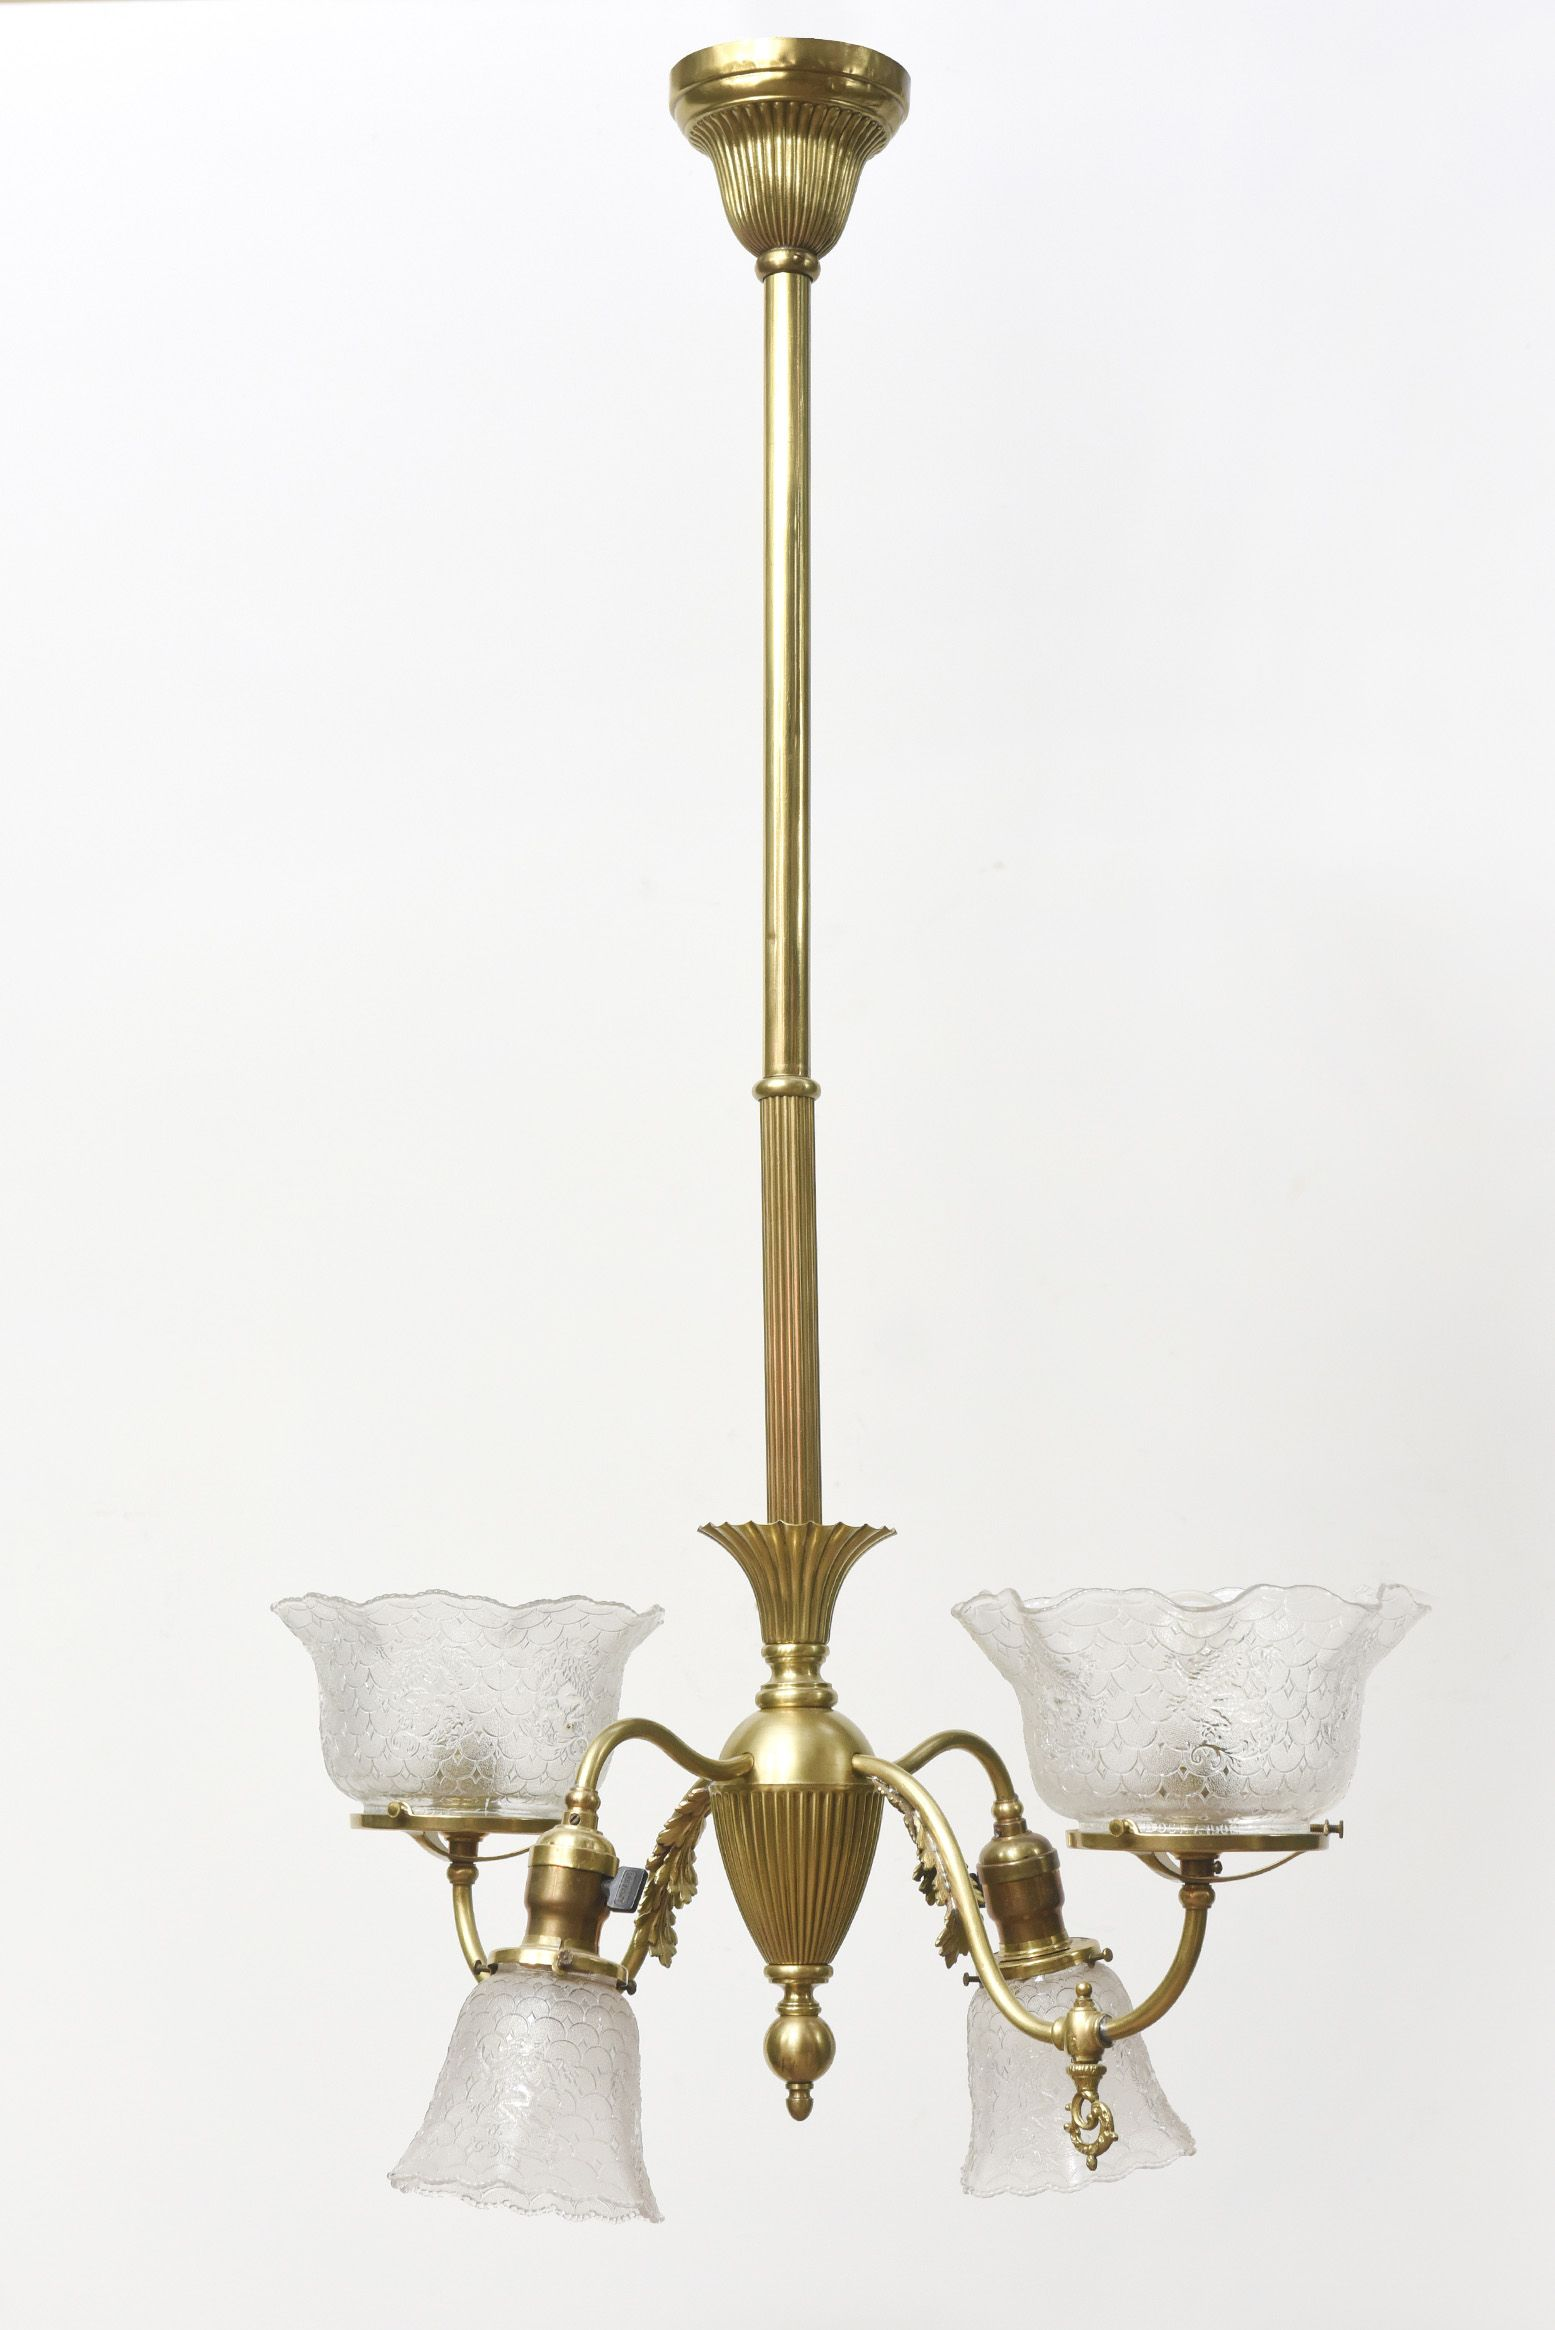 Pin by Appleton Antique Lighting on Chandeliers